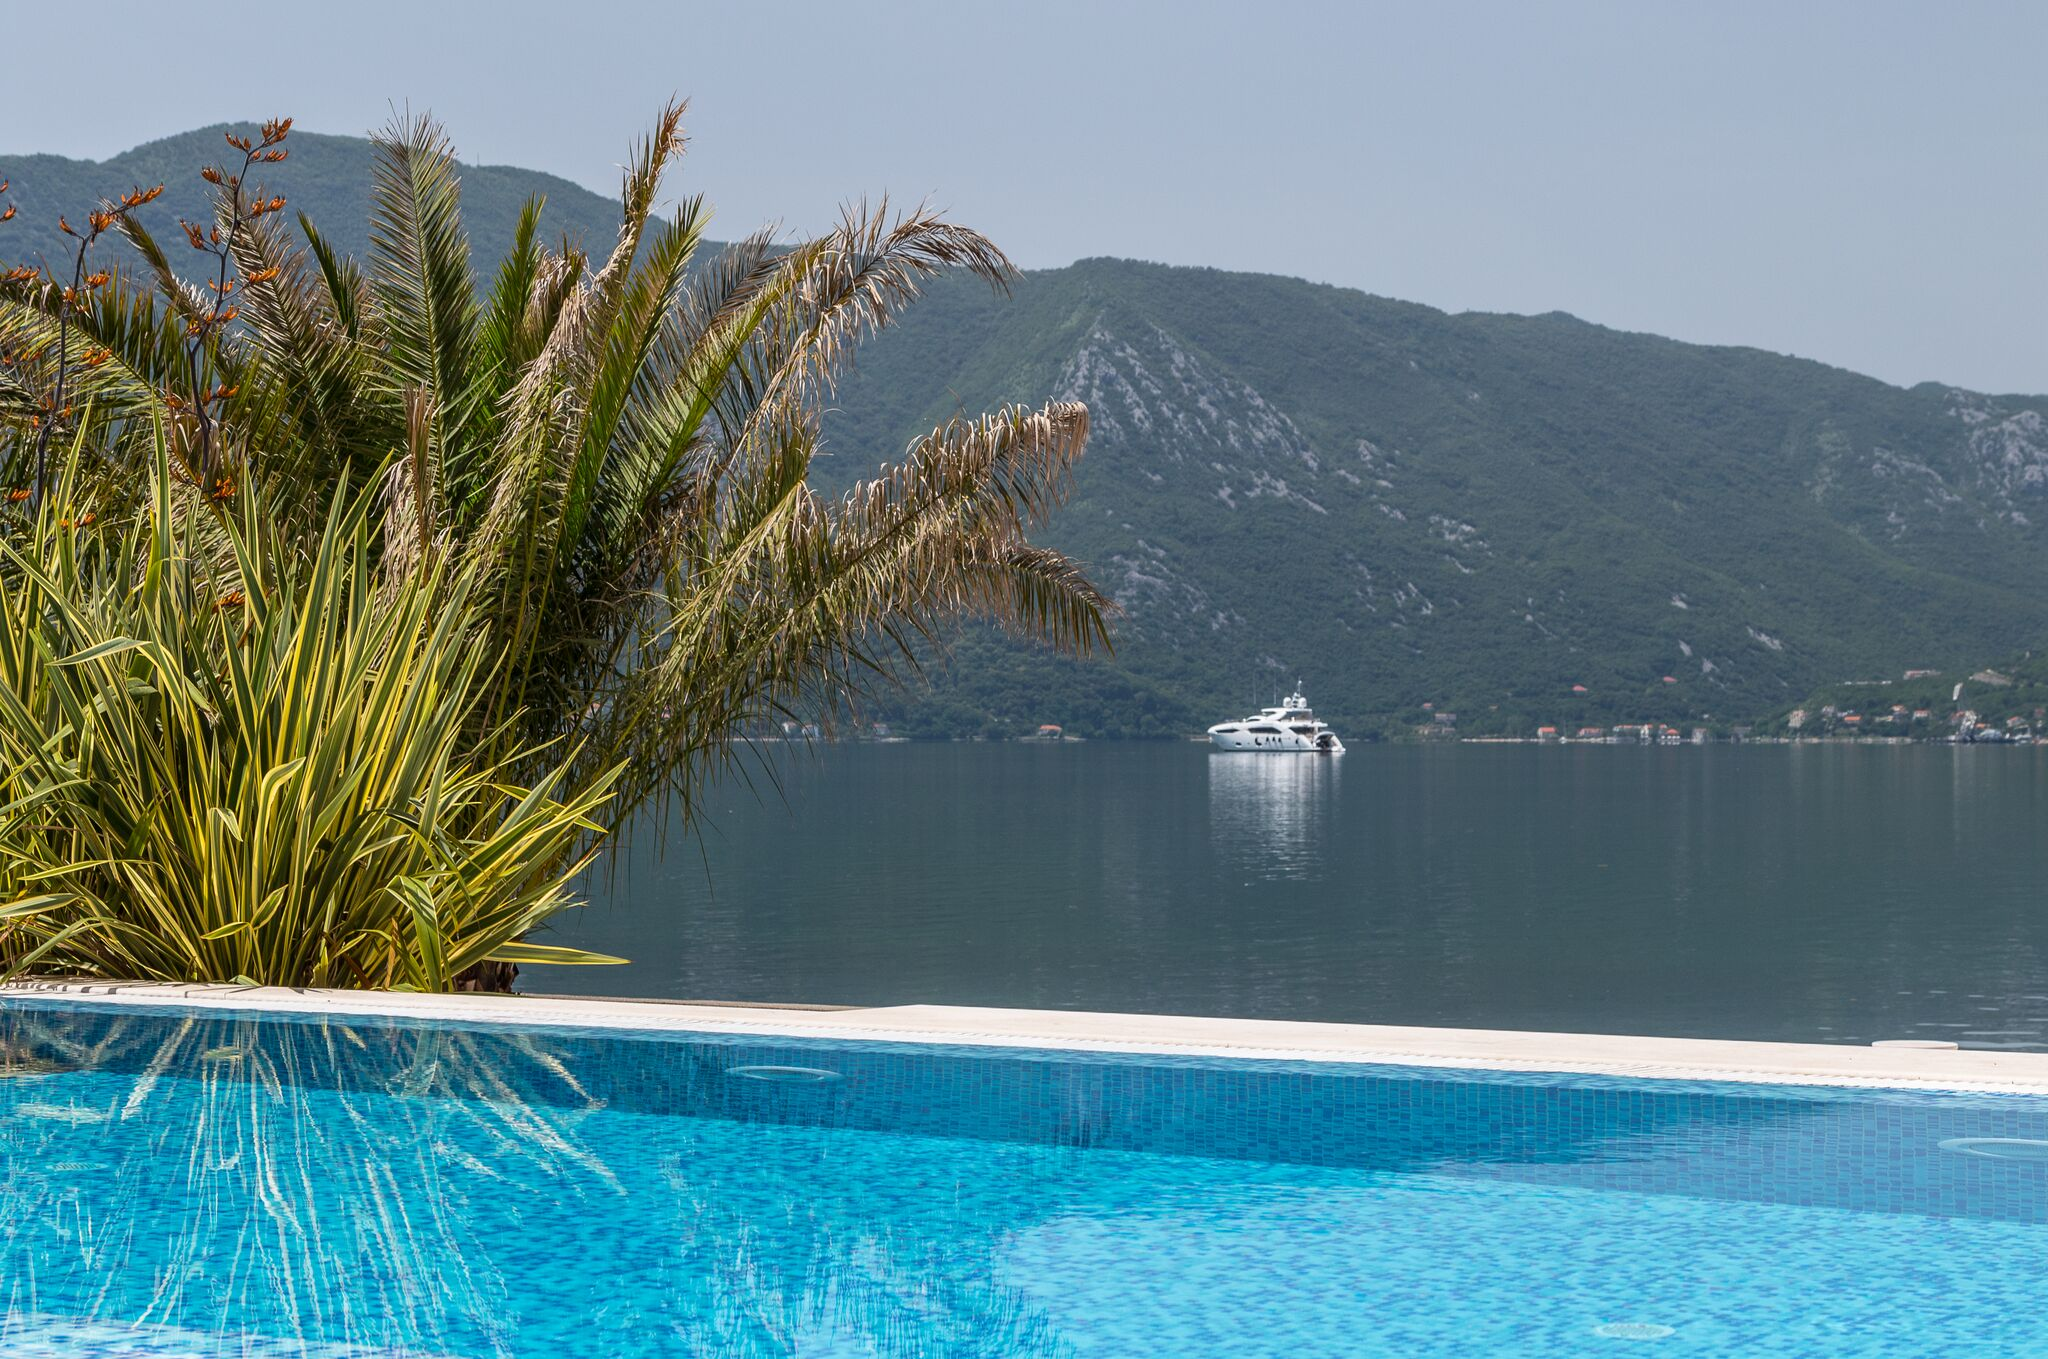 Luxury-waterfront-villa-with-swimming-pool-for-sale-in-Kotor (13).jpeg